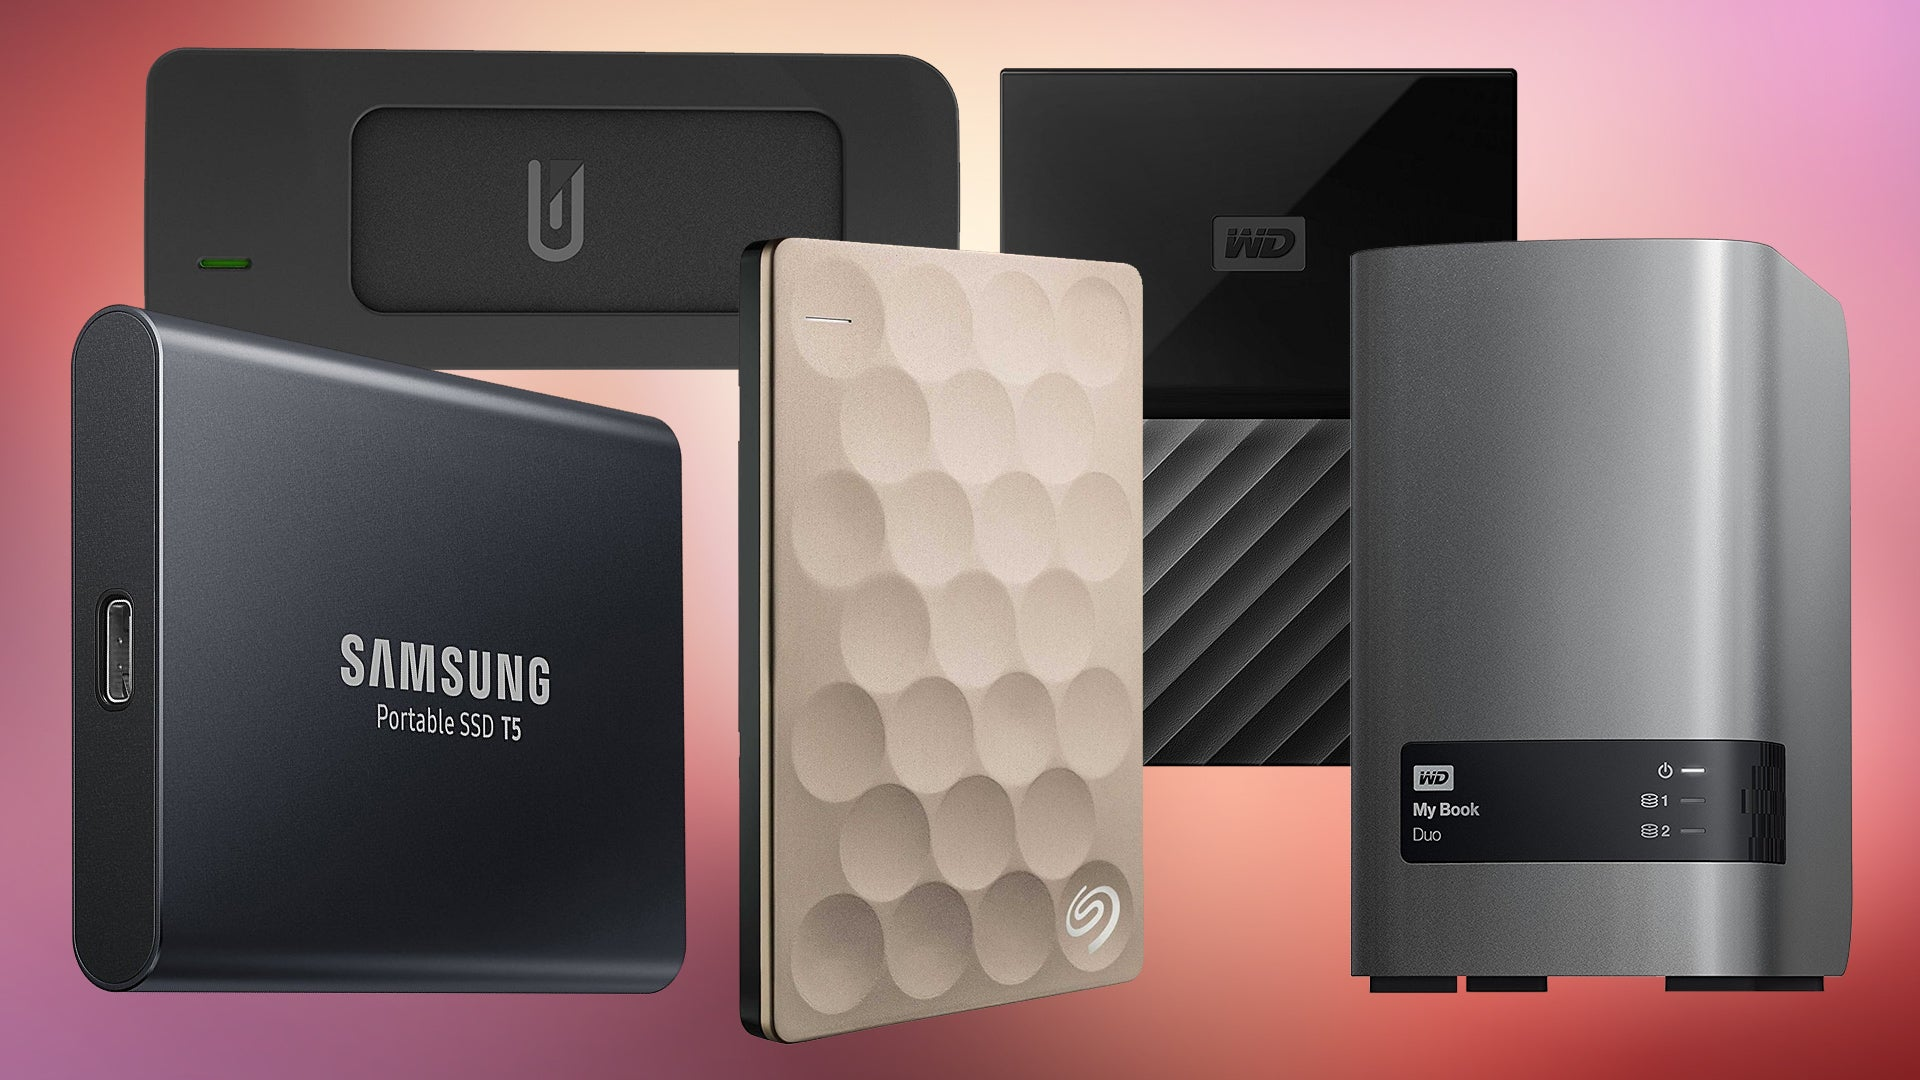 Best External Hard Drive 2020: Portable HDDs for Extra Storage Space